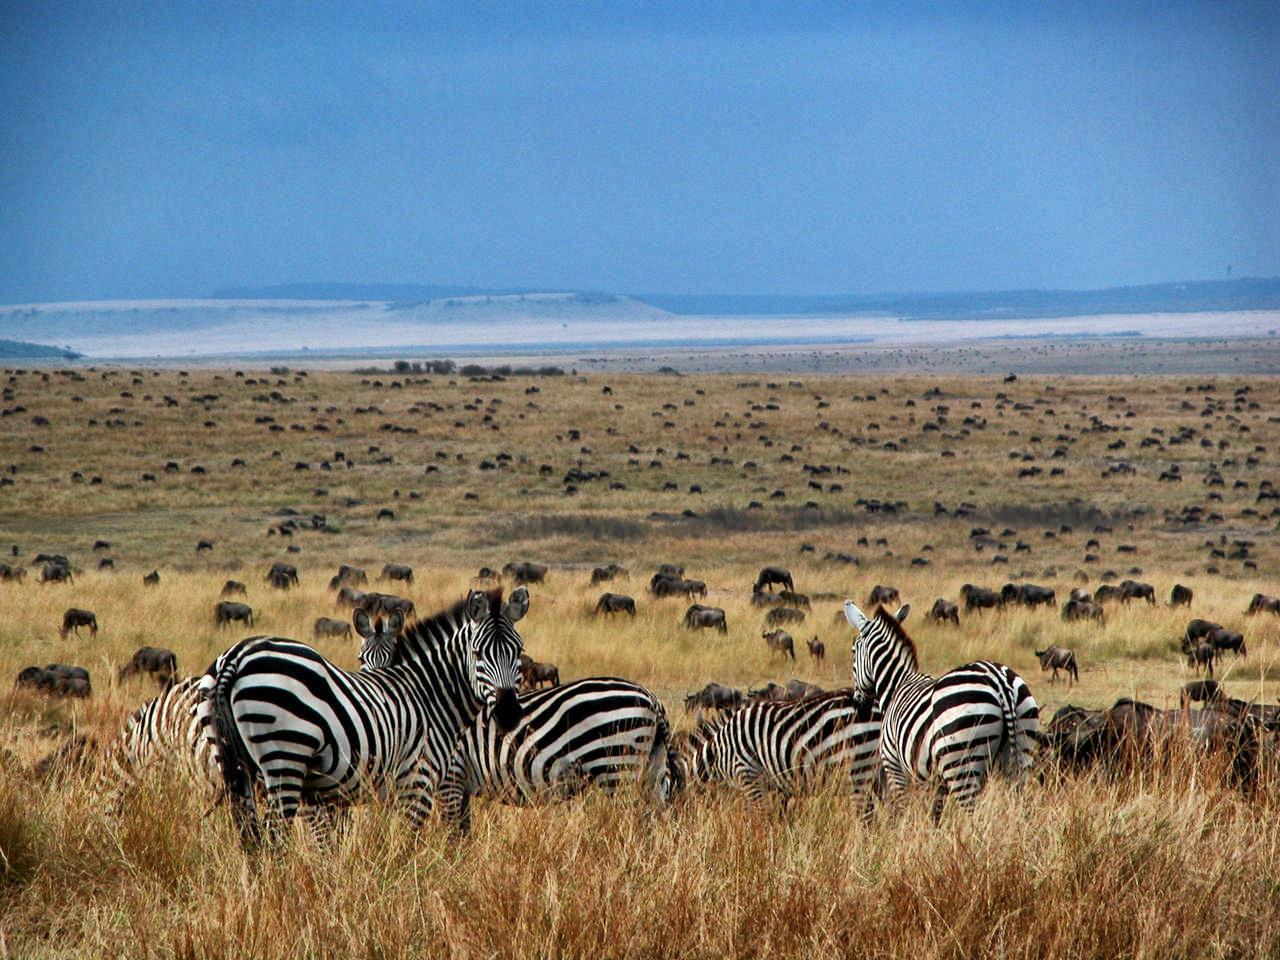 zebras overlook a field of massive herds of wildlife on a clear day on this Africa migration luxury safari